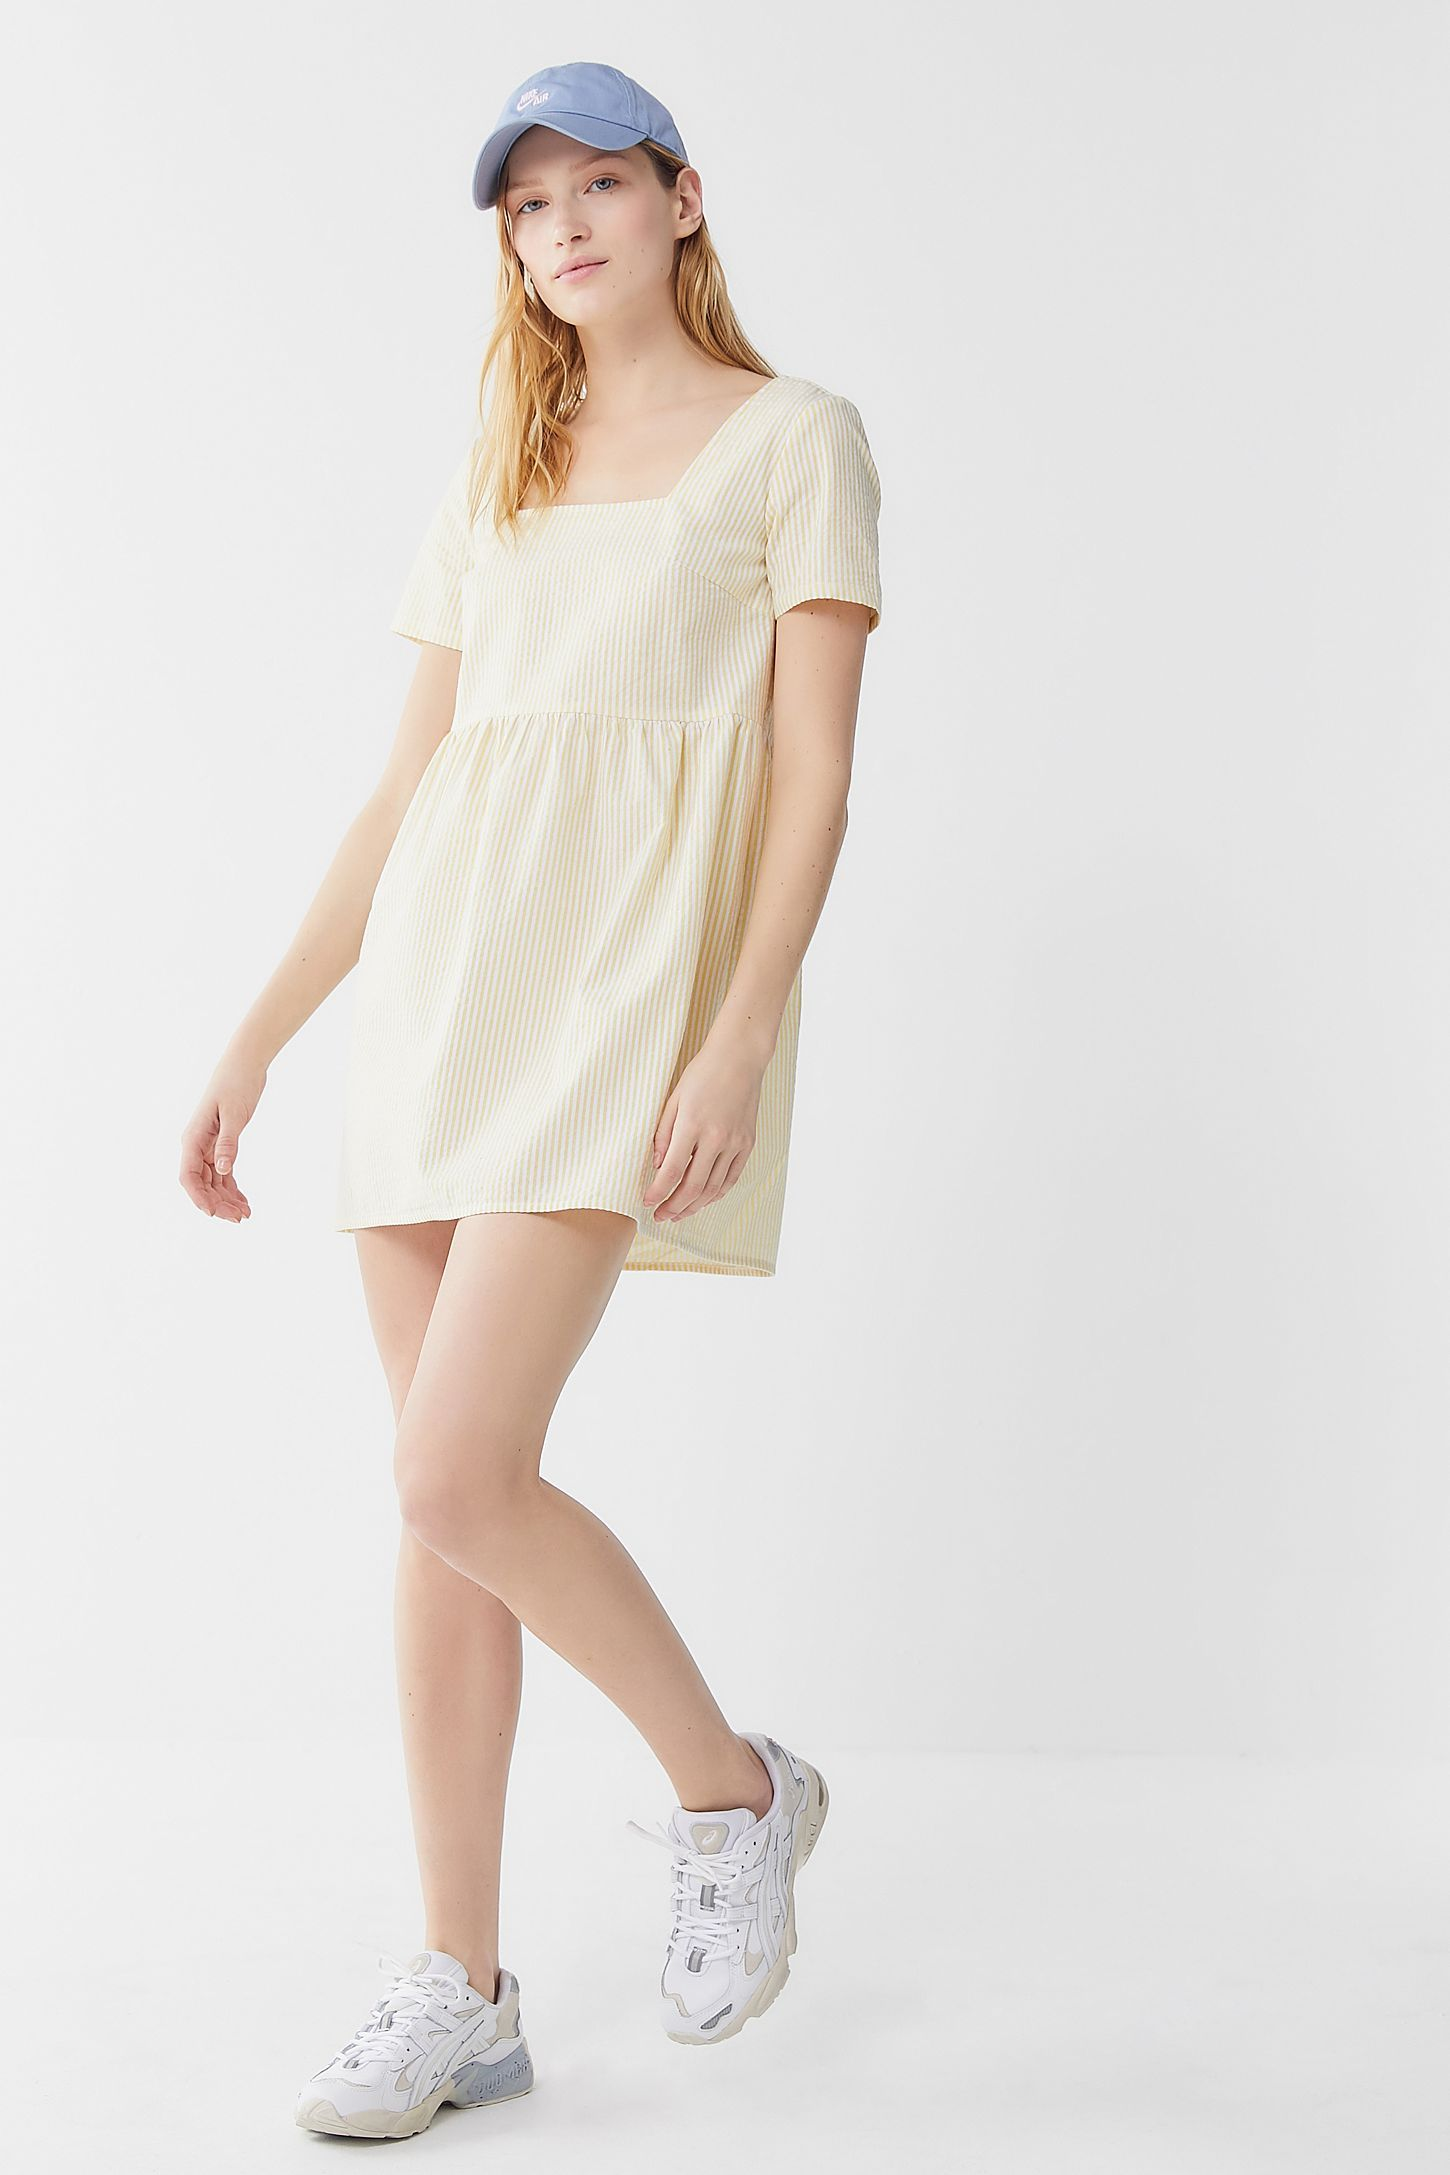 cbad7bd9854a4 Urban Renewal Remnants Striped Seersucker Babydoll Dress | Urban Outfitters